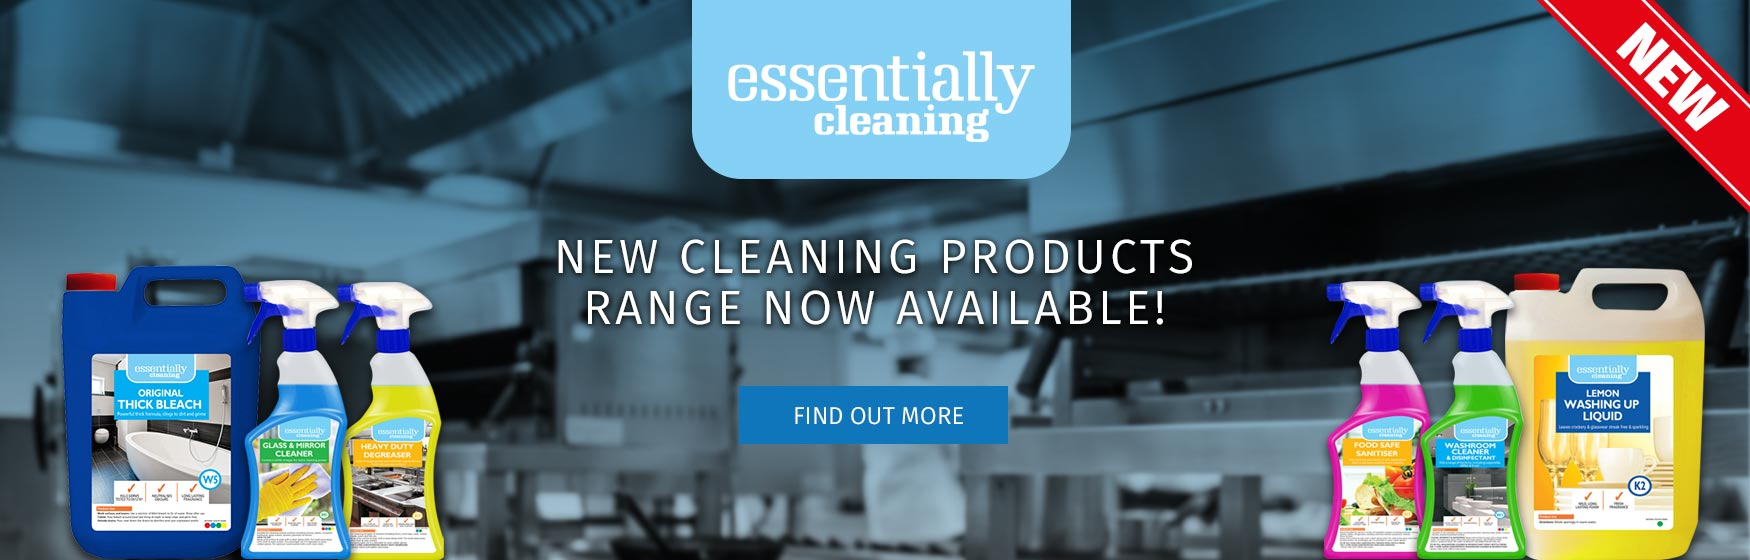 Essentially Cleaning new cleaning range